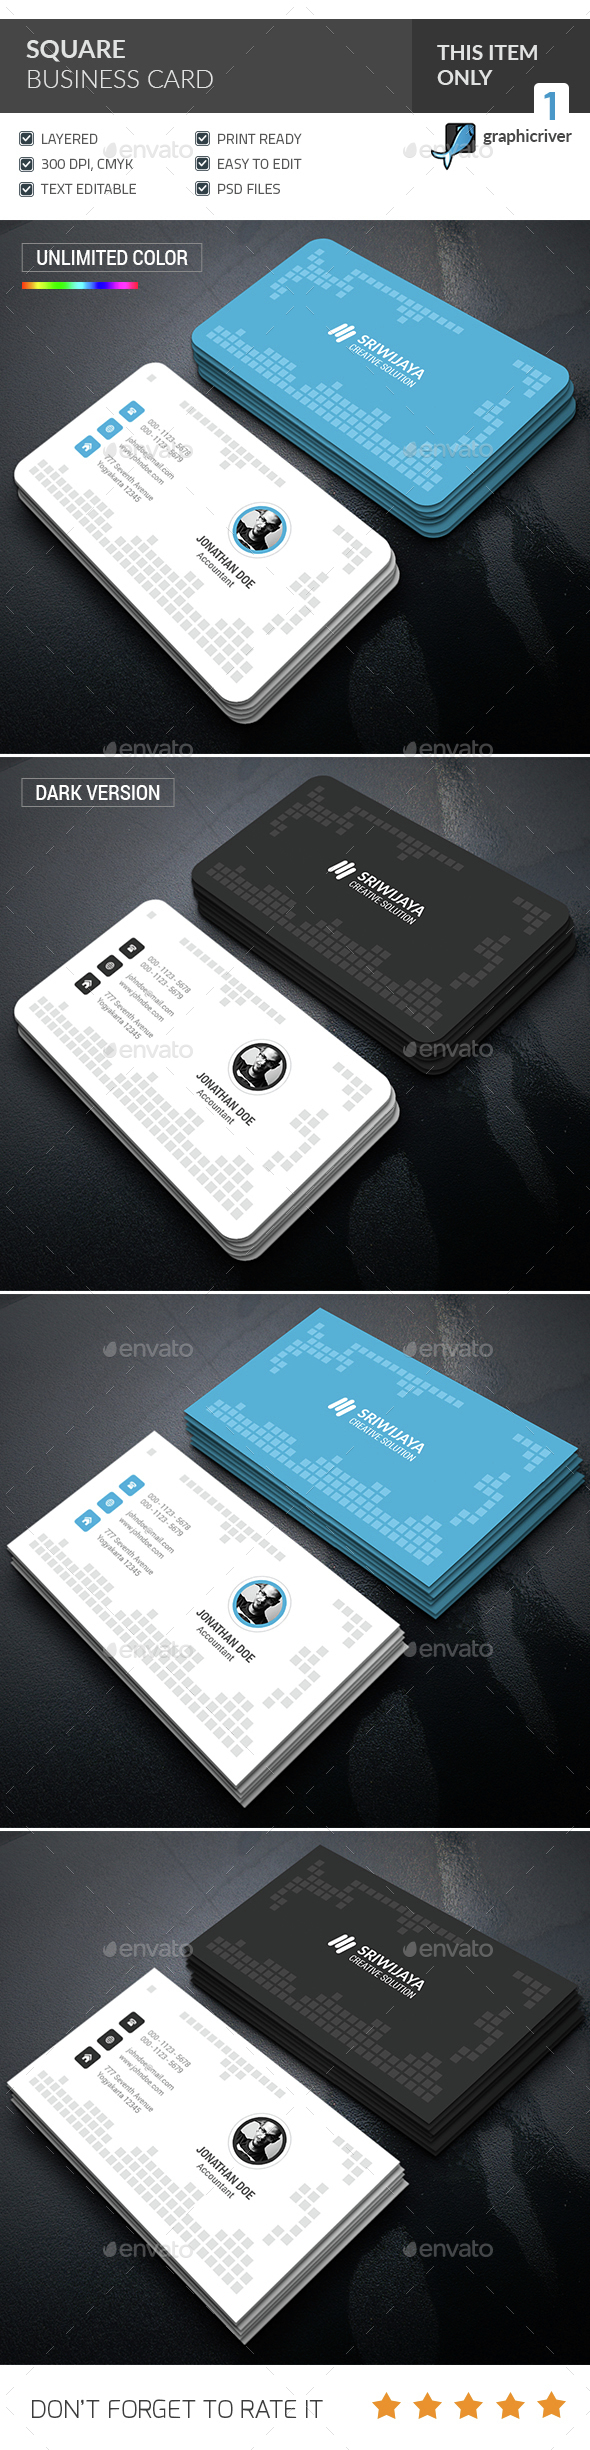 Square Business Card  - Corporate Business Cards